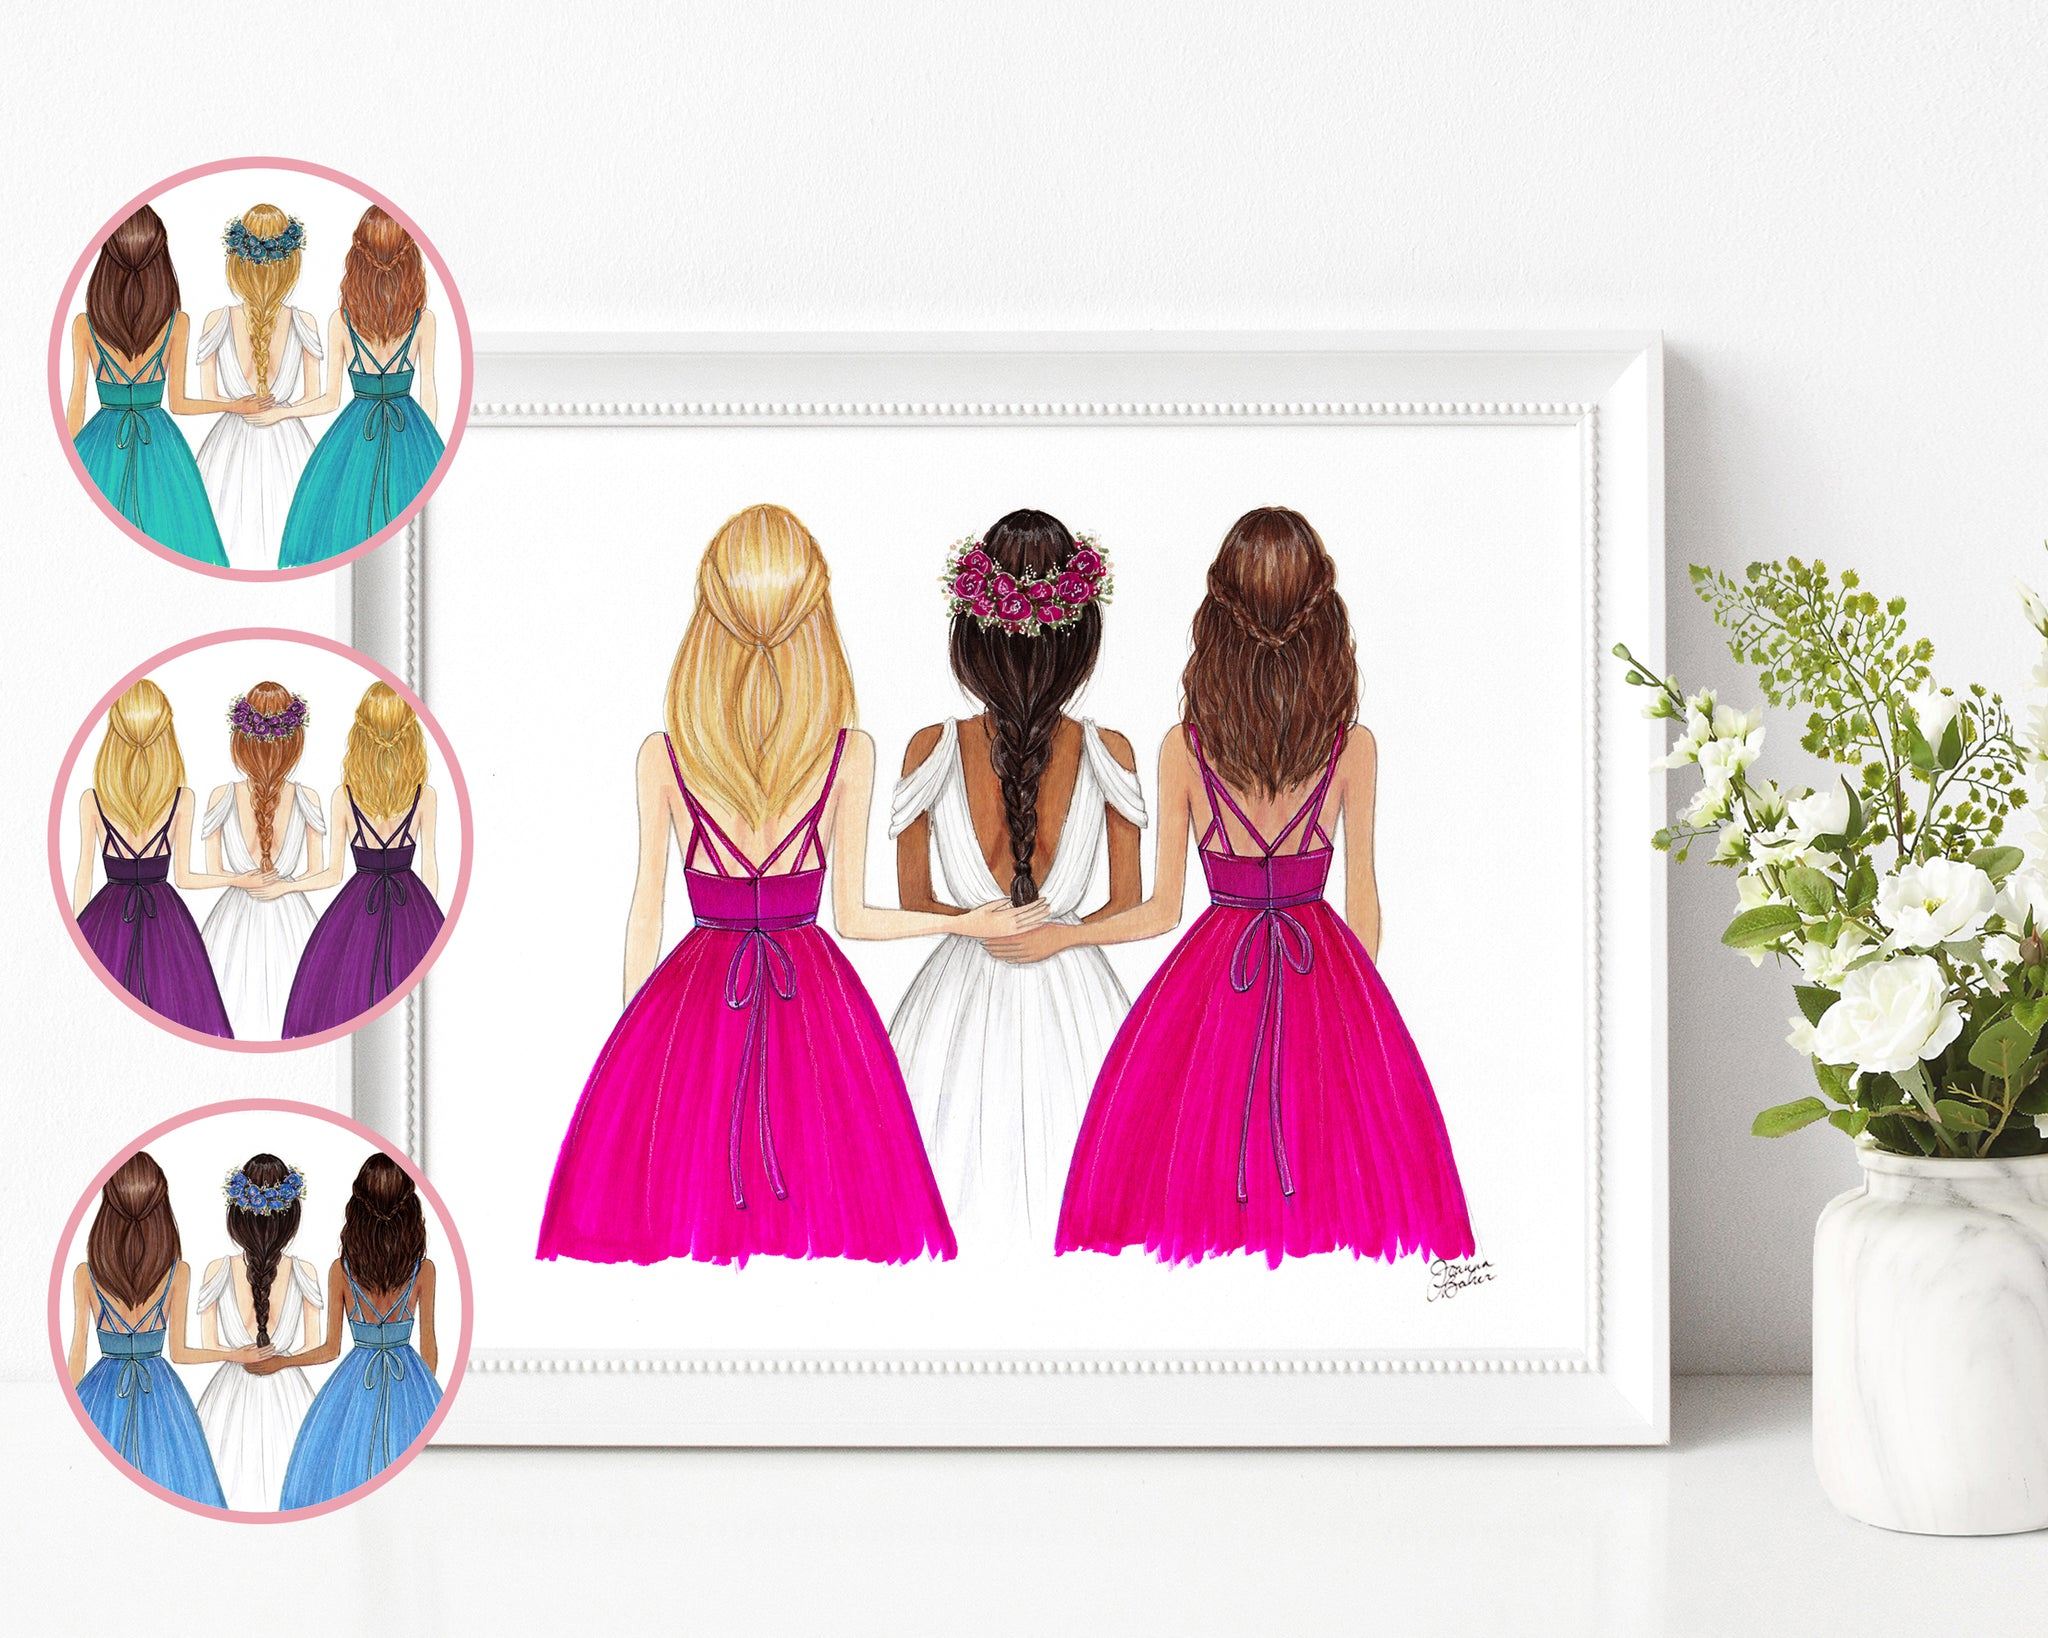 Colorful Bridesmaids Wedding Fashion Illustration Art Print